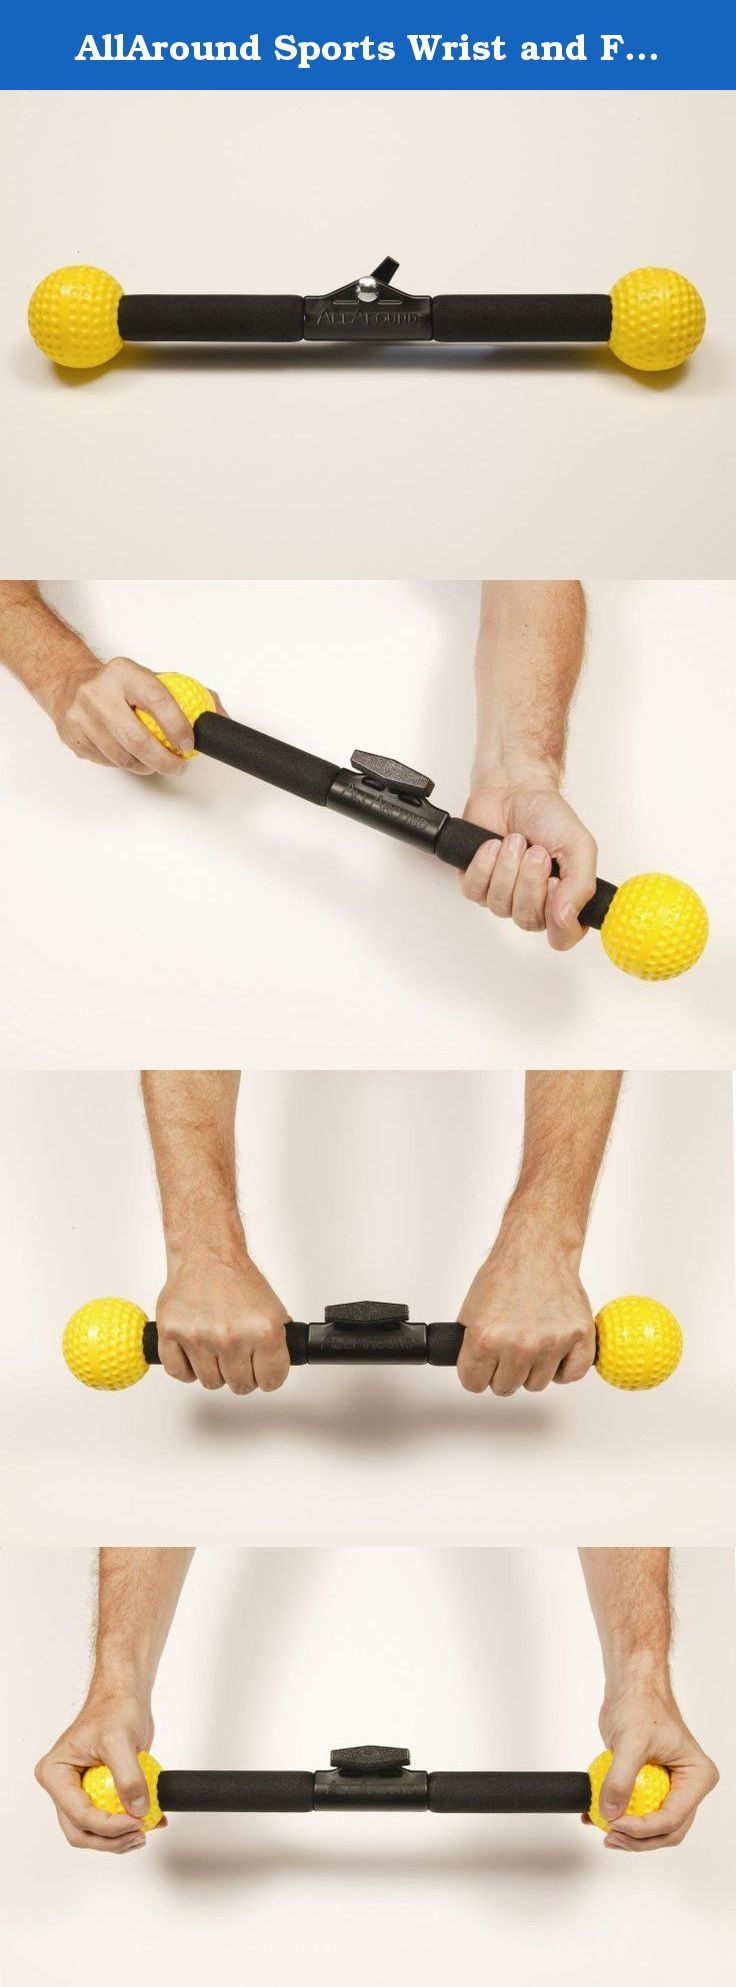 AllAround Sports Wrist and Forearm Strengthener. AllAround Wrist and Forearm Strengtheners are the most complete wrist exercise/therapy devices for improving your game. Whether it?s golf, tennis, baseball, bowling, racquetball, or hockey... this device is for you. By using the grips in the center and the balls at the ends, the AllAround Wrist and Forearm Strengthener addresses all of the possible motions of the wrist. Plus the AllAround is equipped with a tension adjuster, enabling you to...